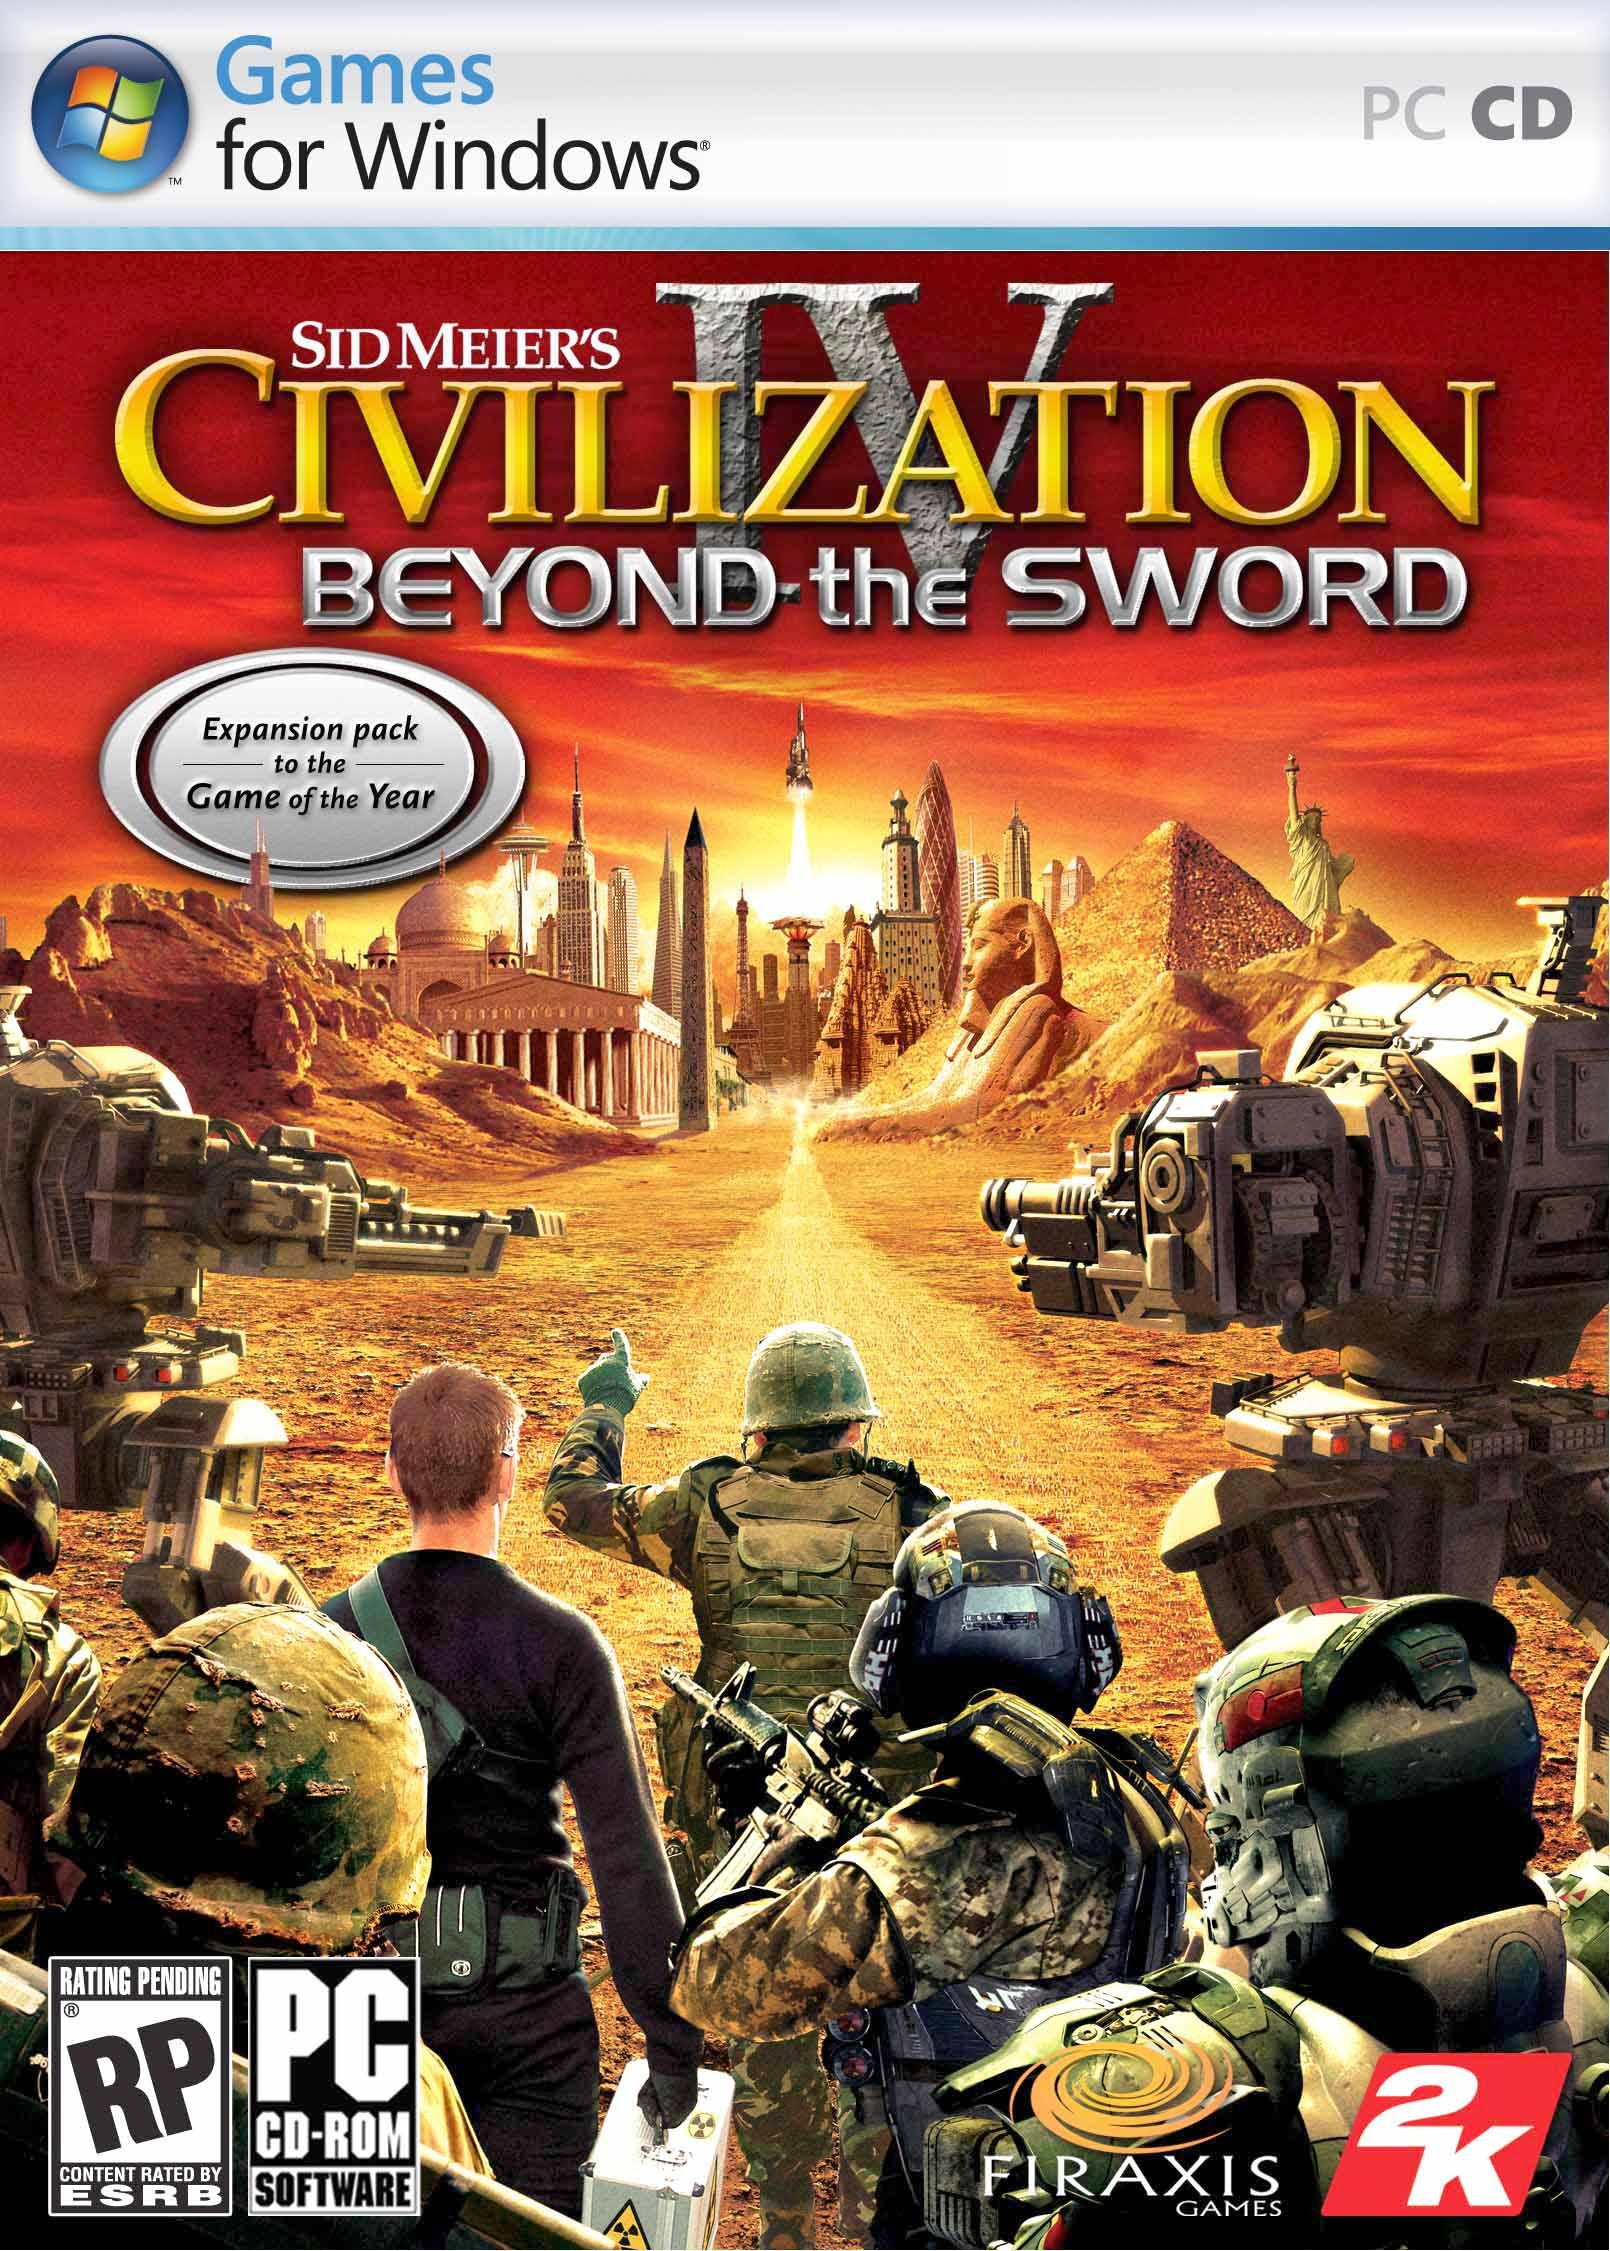 Civilization iv: beyond the sword — strategywiki, the video game.